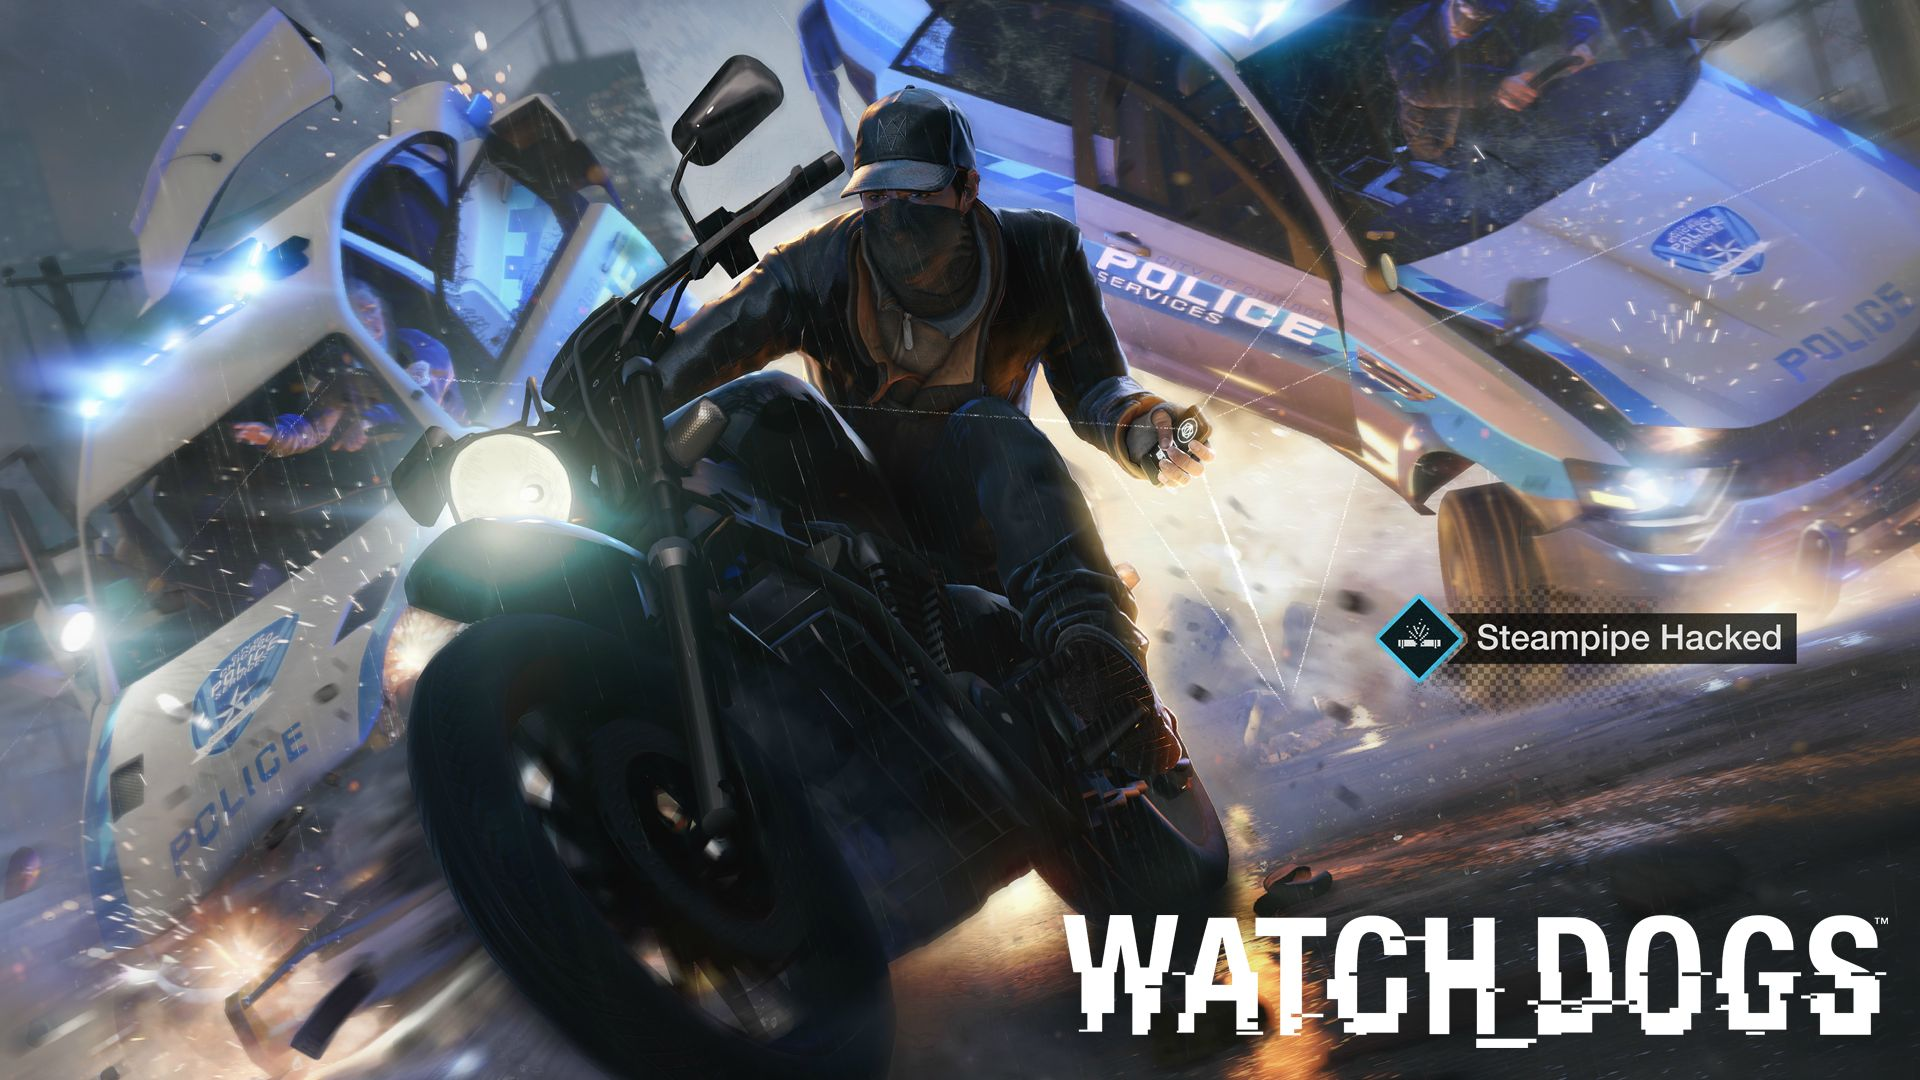 watch_dogs_wallpaper_Steampipe_Hacked_1920x1080.jpg